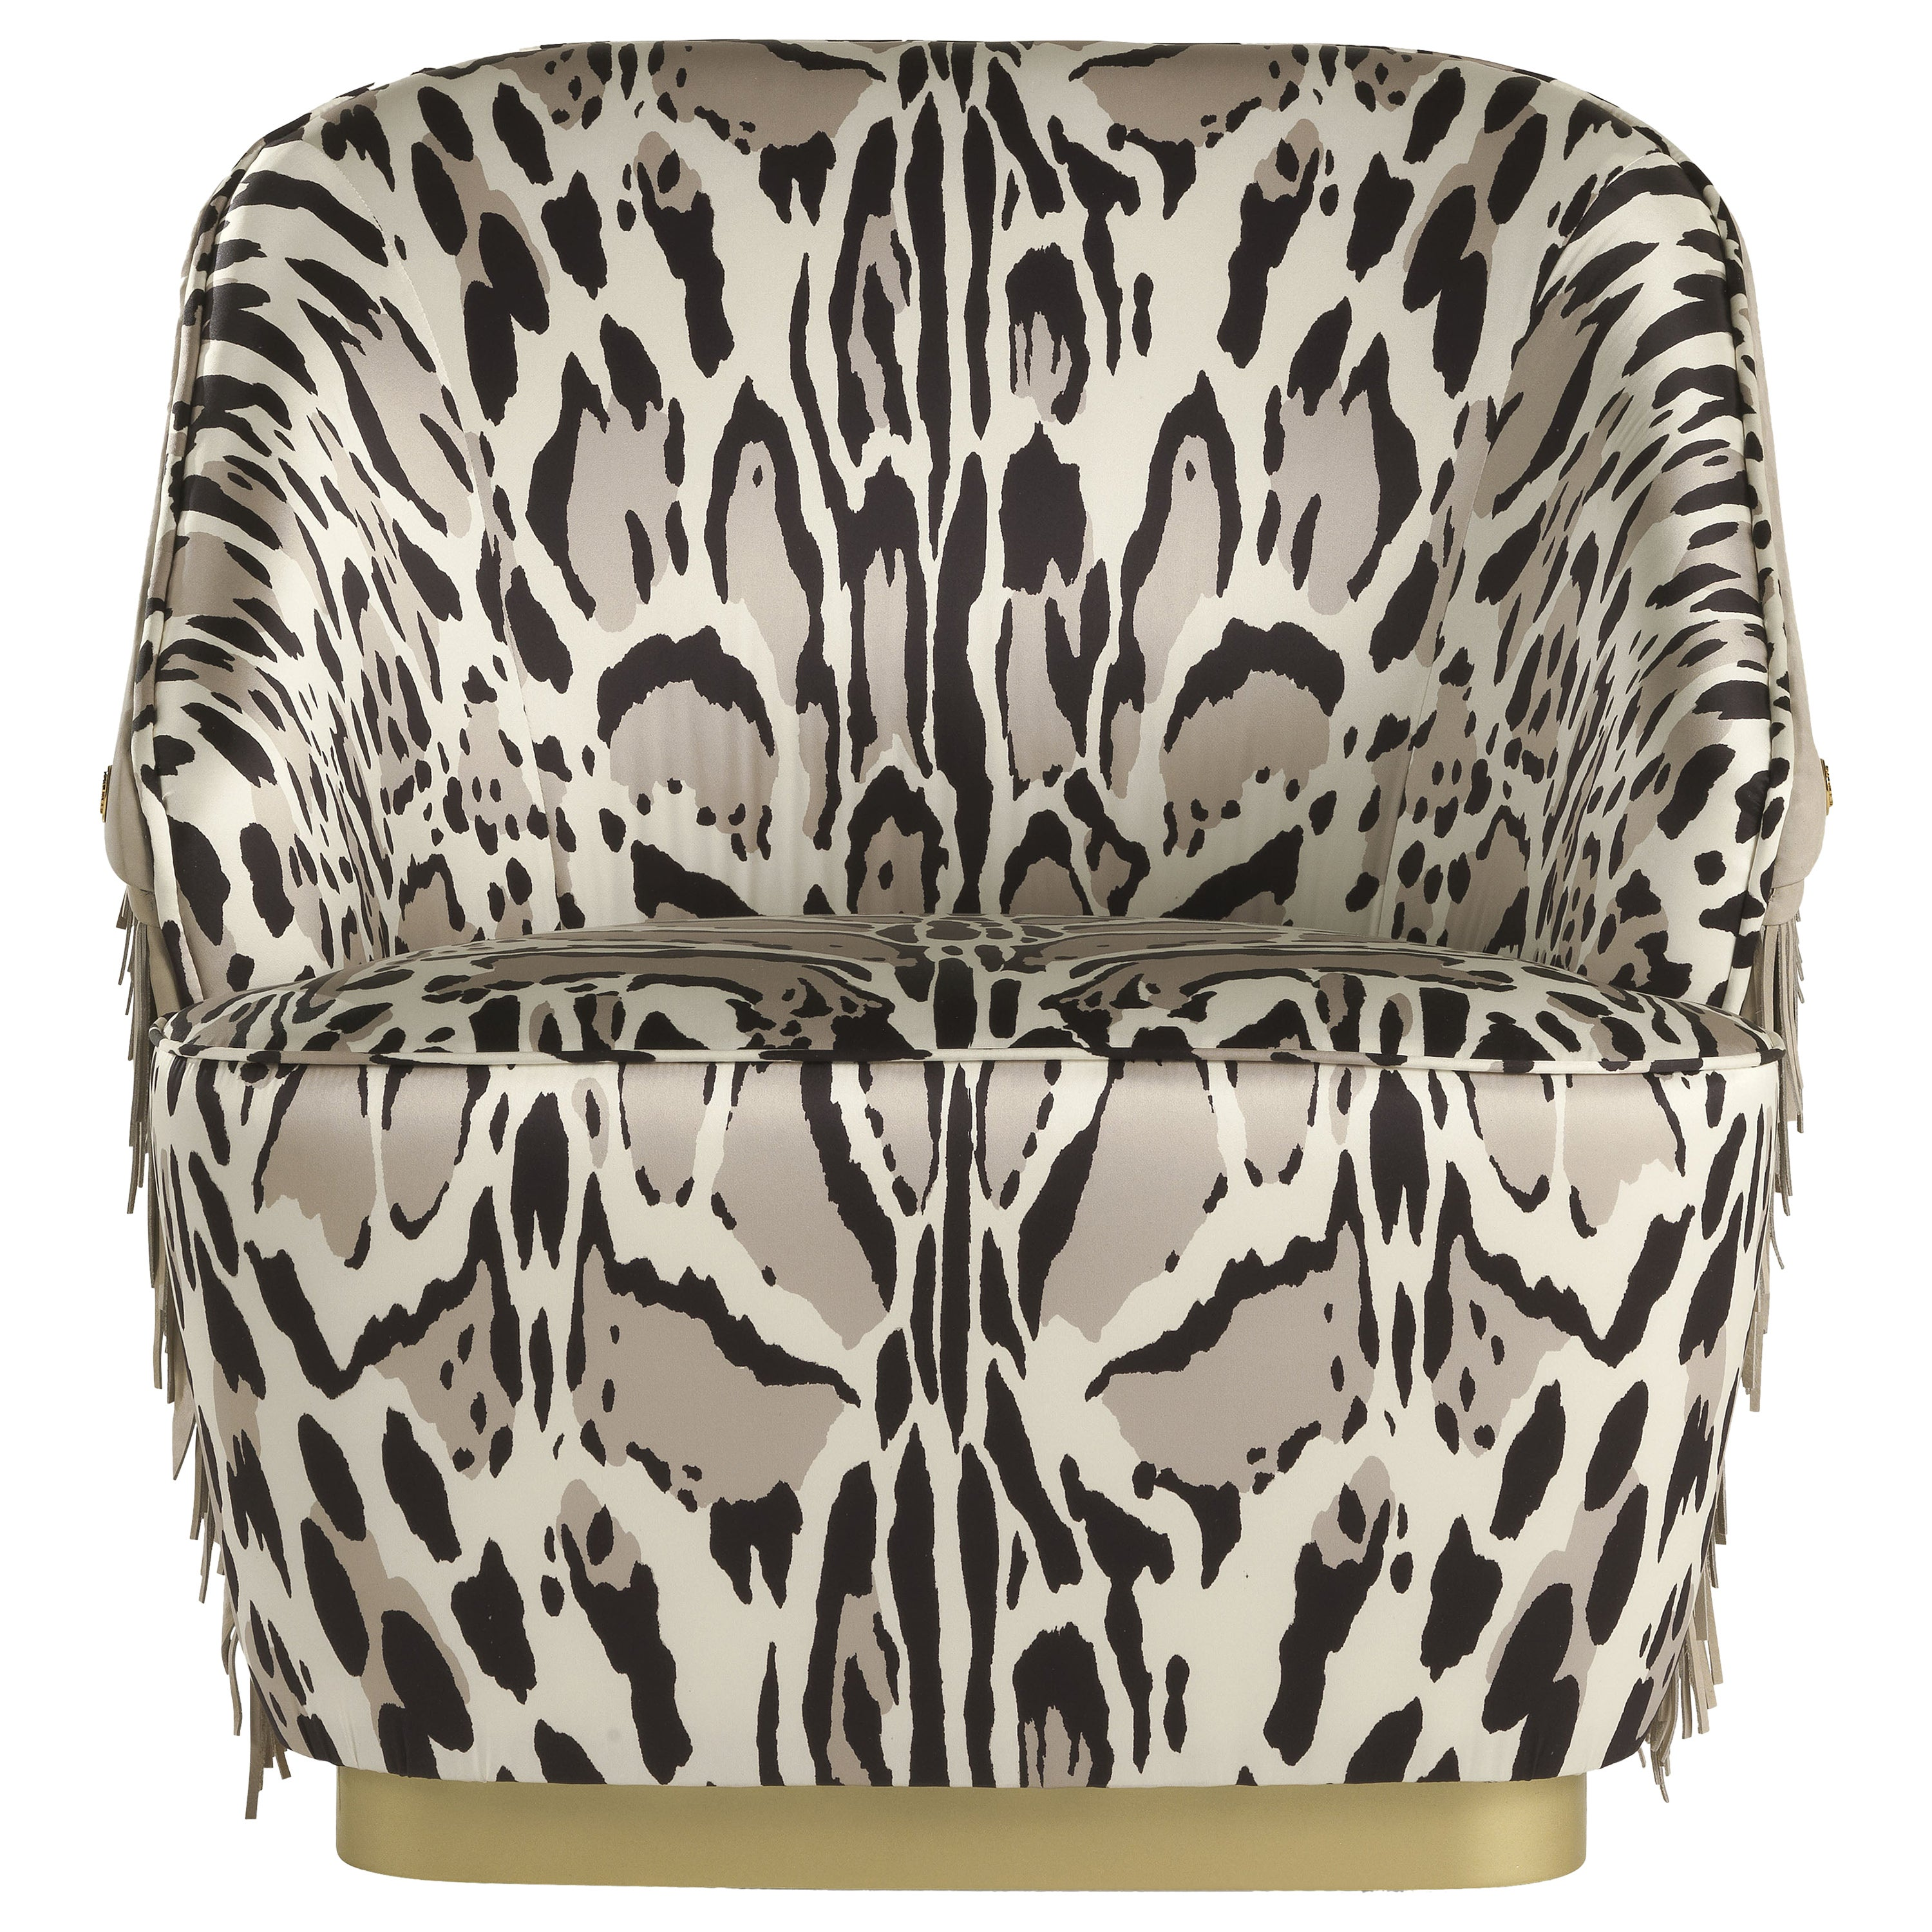 Dudley Armchair in Fabric and Leather by Roberto Cavalli Home Interiors